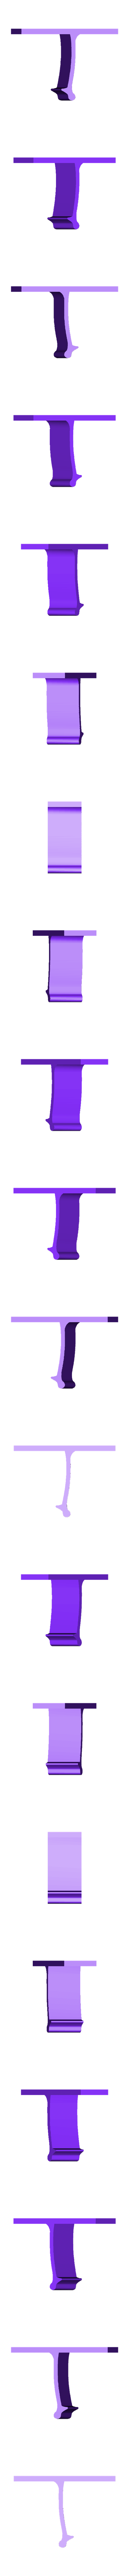 SNESConnectorHook.stl Download free STL file Modular SNES Game Wall Hangers (Super Nintendo) UPDATED 2015-08-24 • 3D printing object, tonyyoungblood